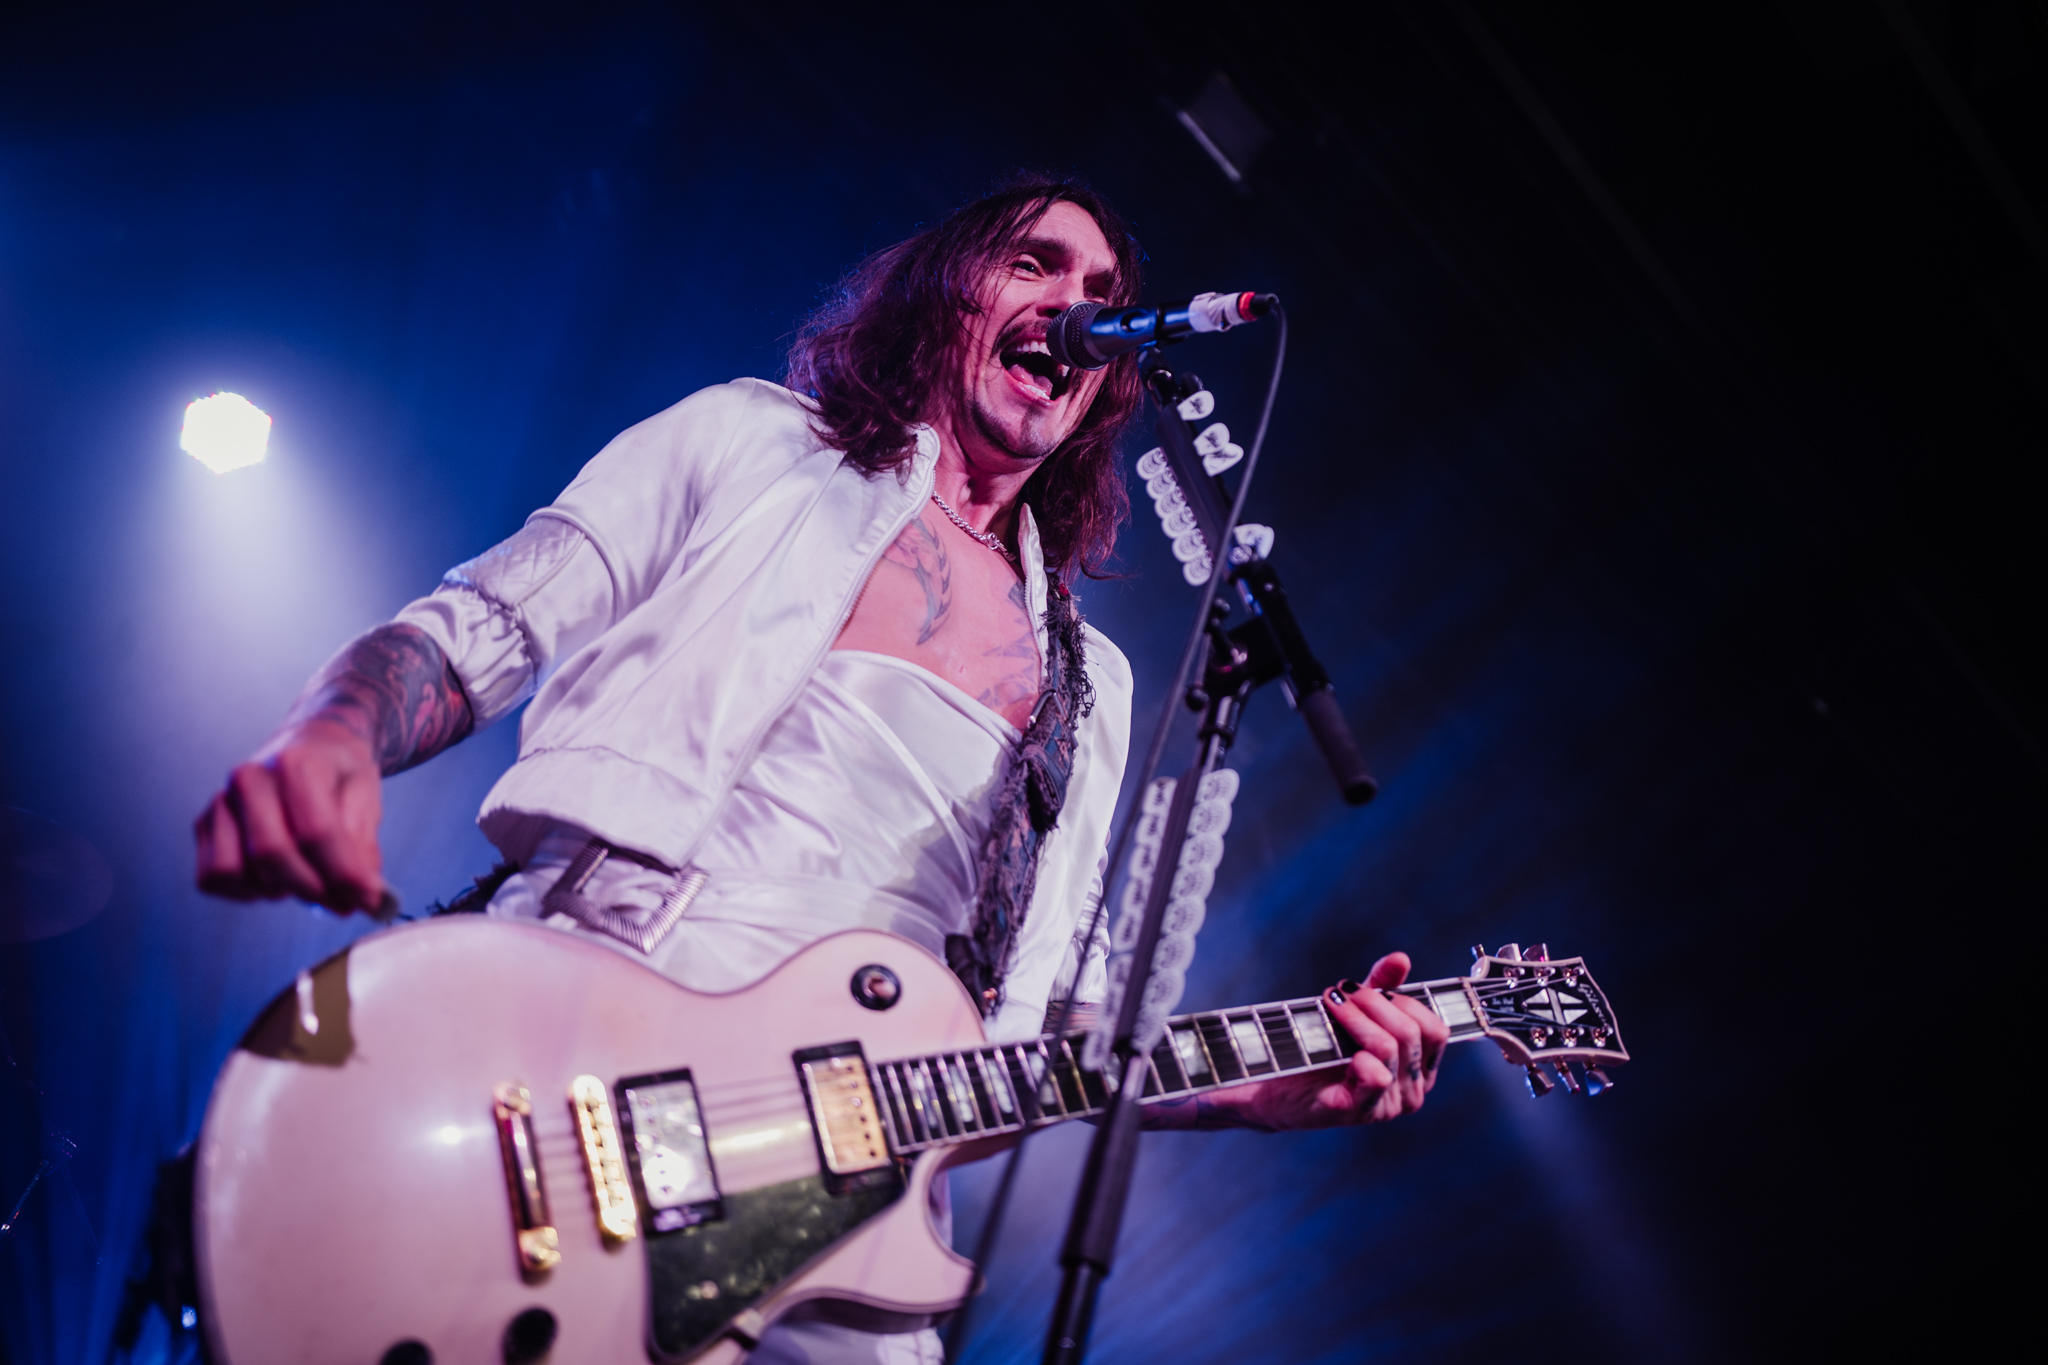 The Darkness @ Simm City Wien